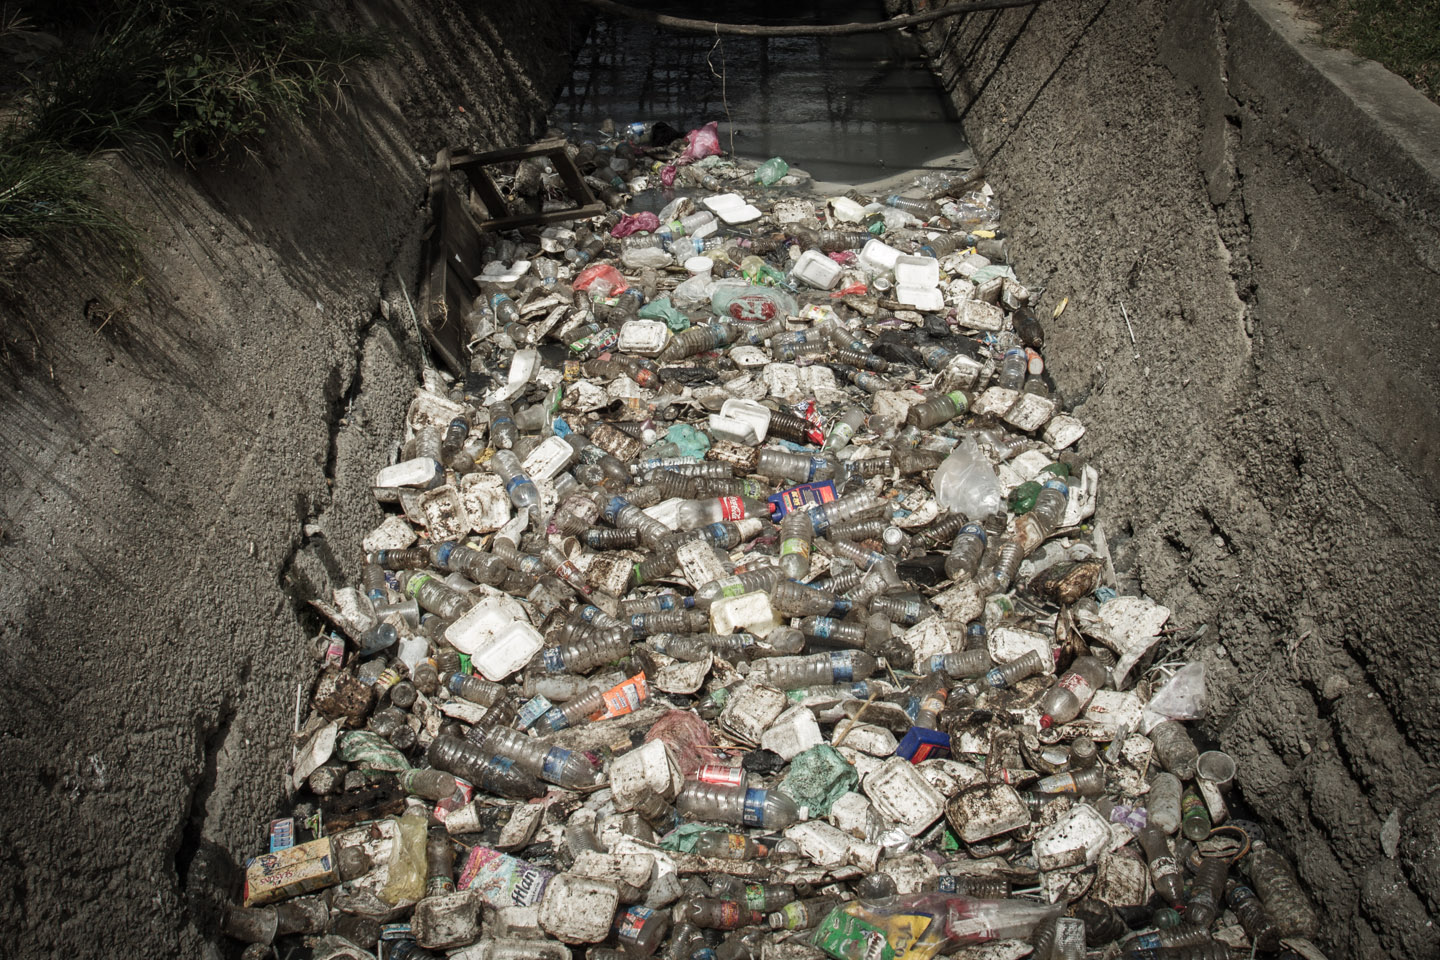 Waste dumped into a small river in Lahad Datu, Borneo, Sabah, Malaysia